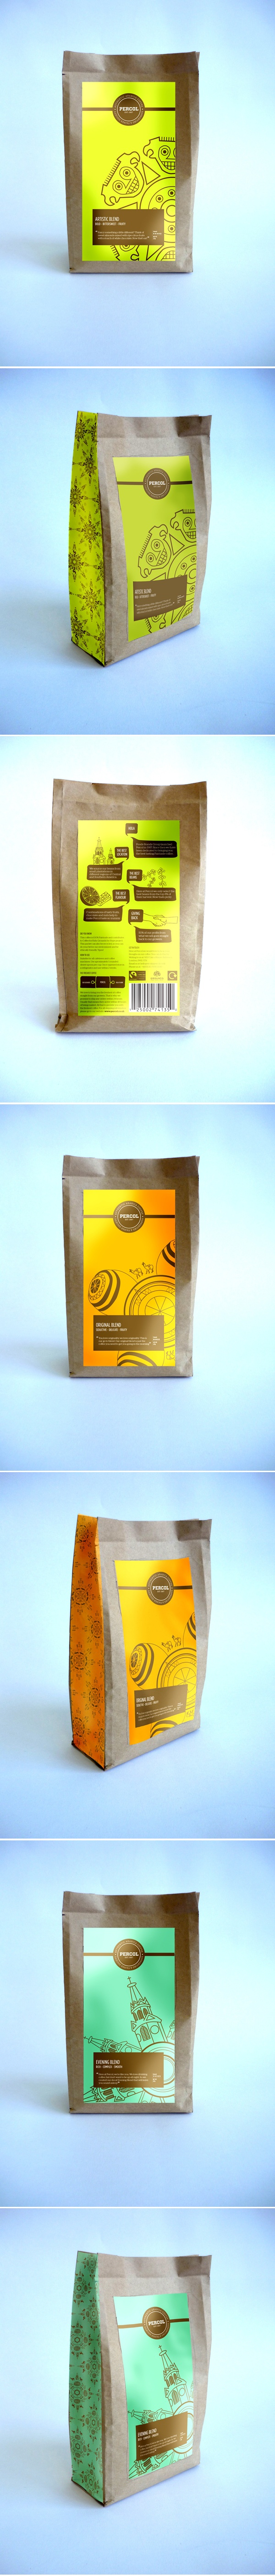 Coffee packaging bag design #side #gusset #bags for more information visit us at www.coffeebags.co.za